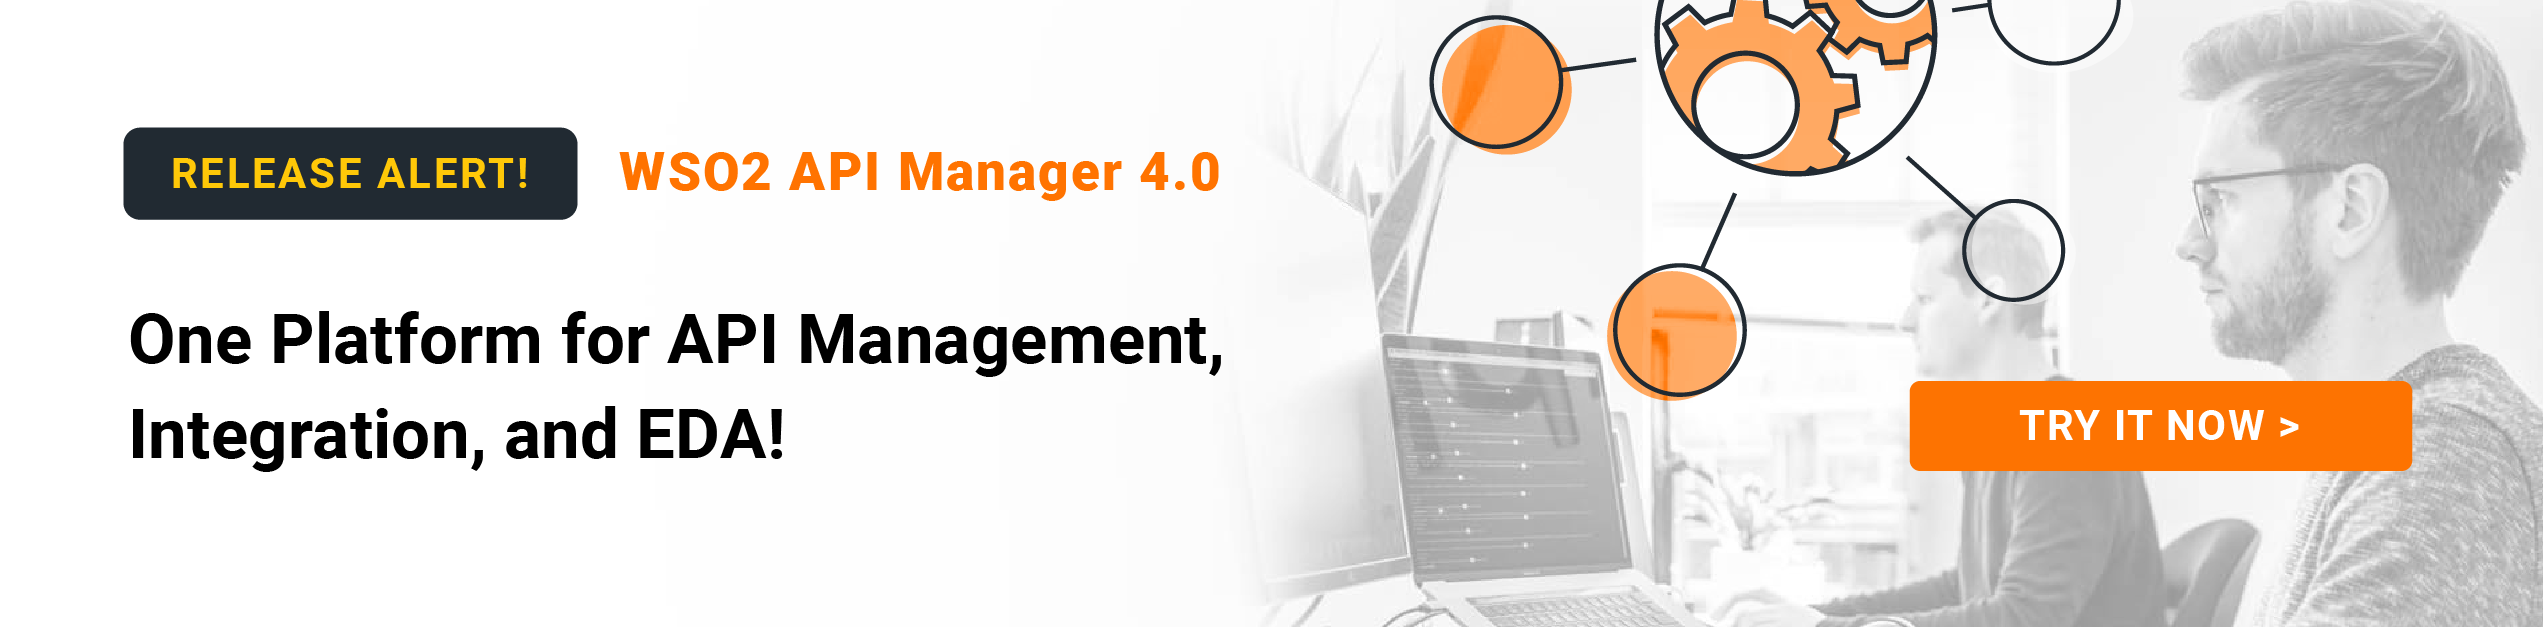 New Release: What's Next for WSO2's Integration Solution?